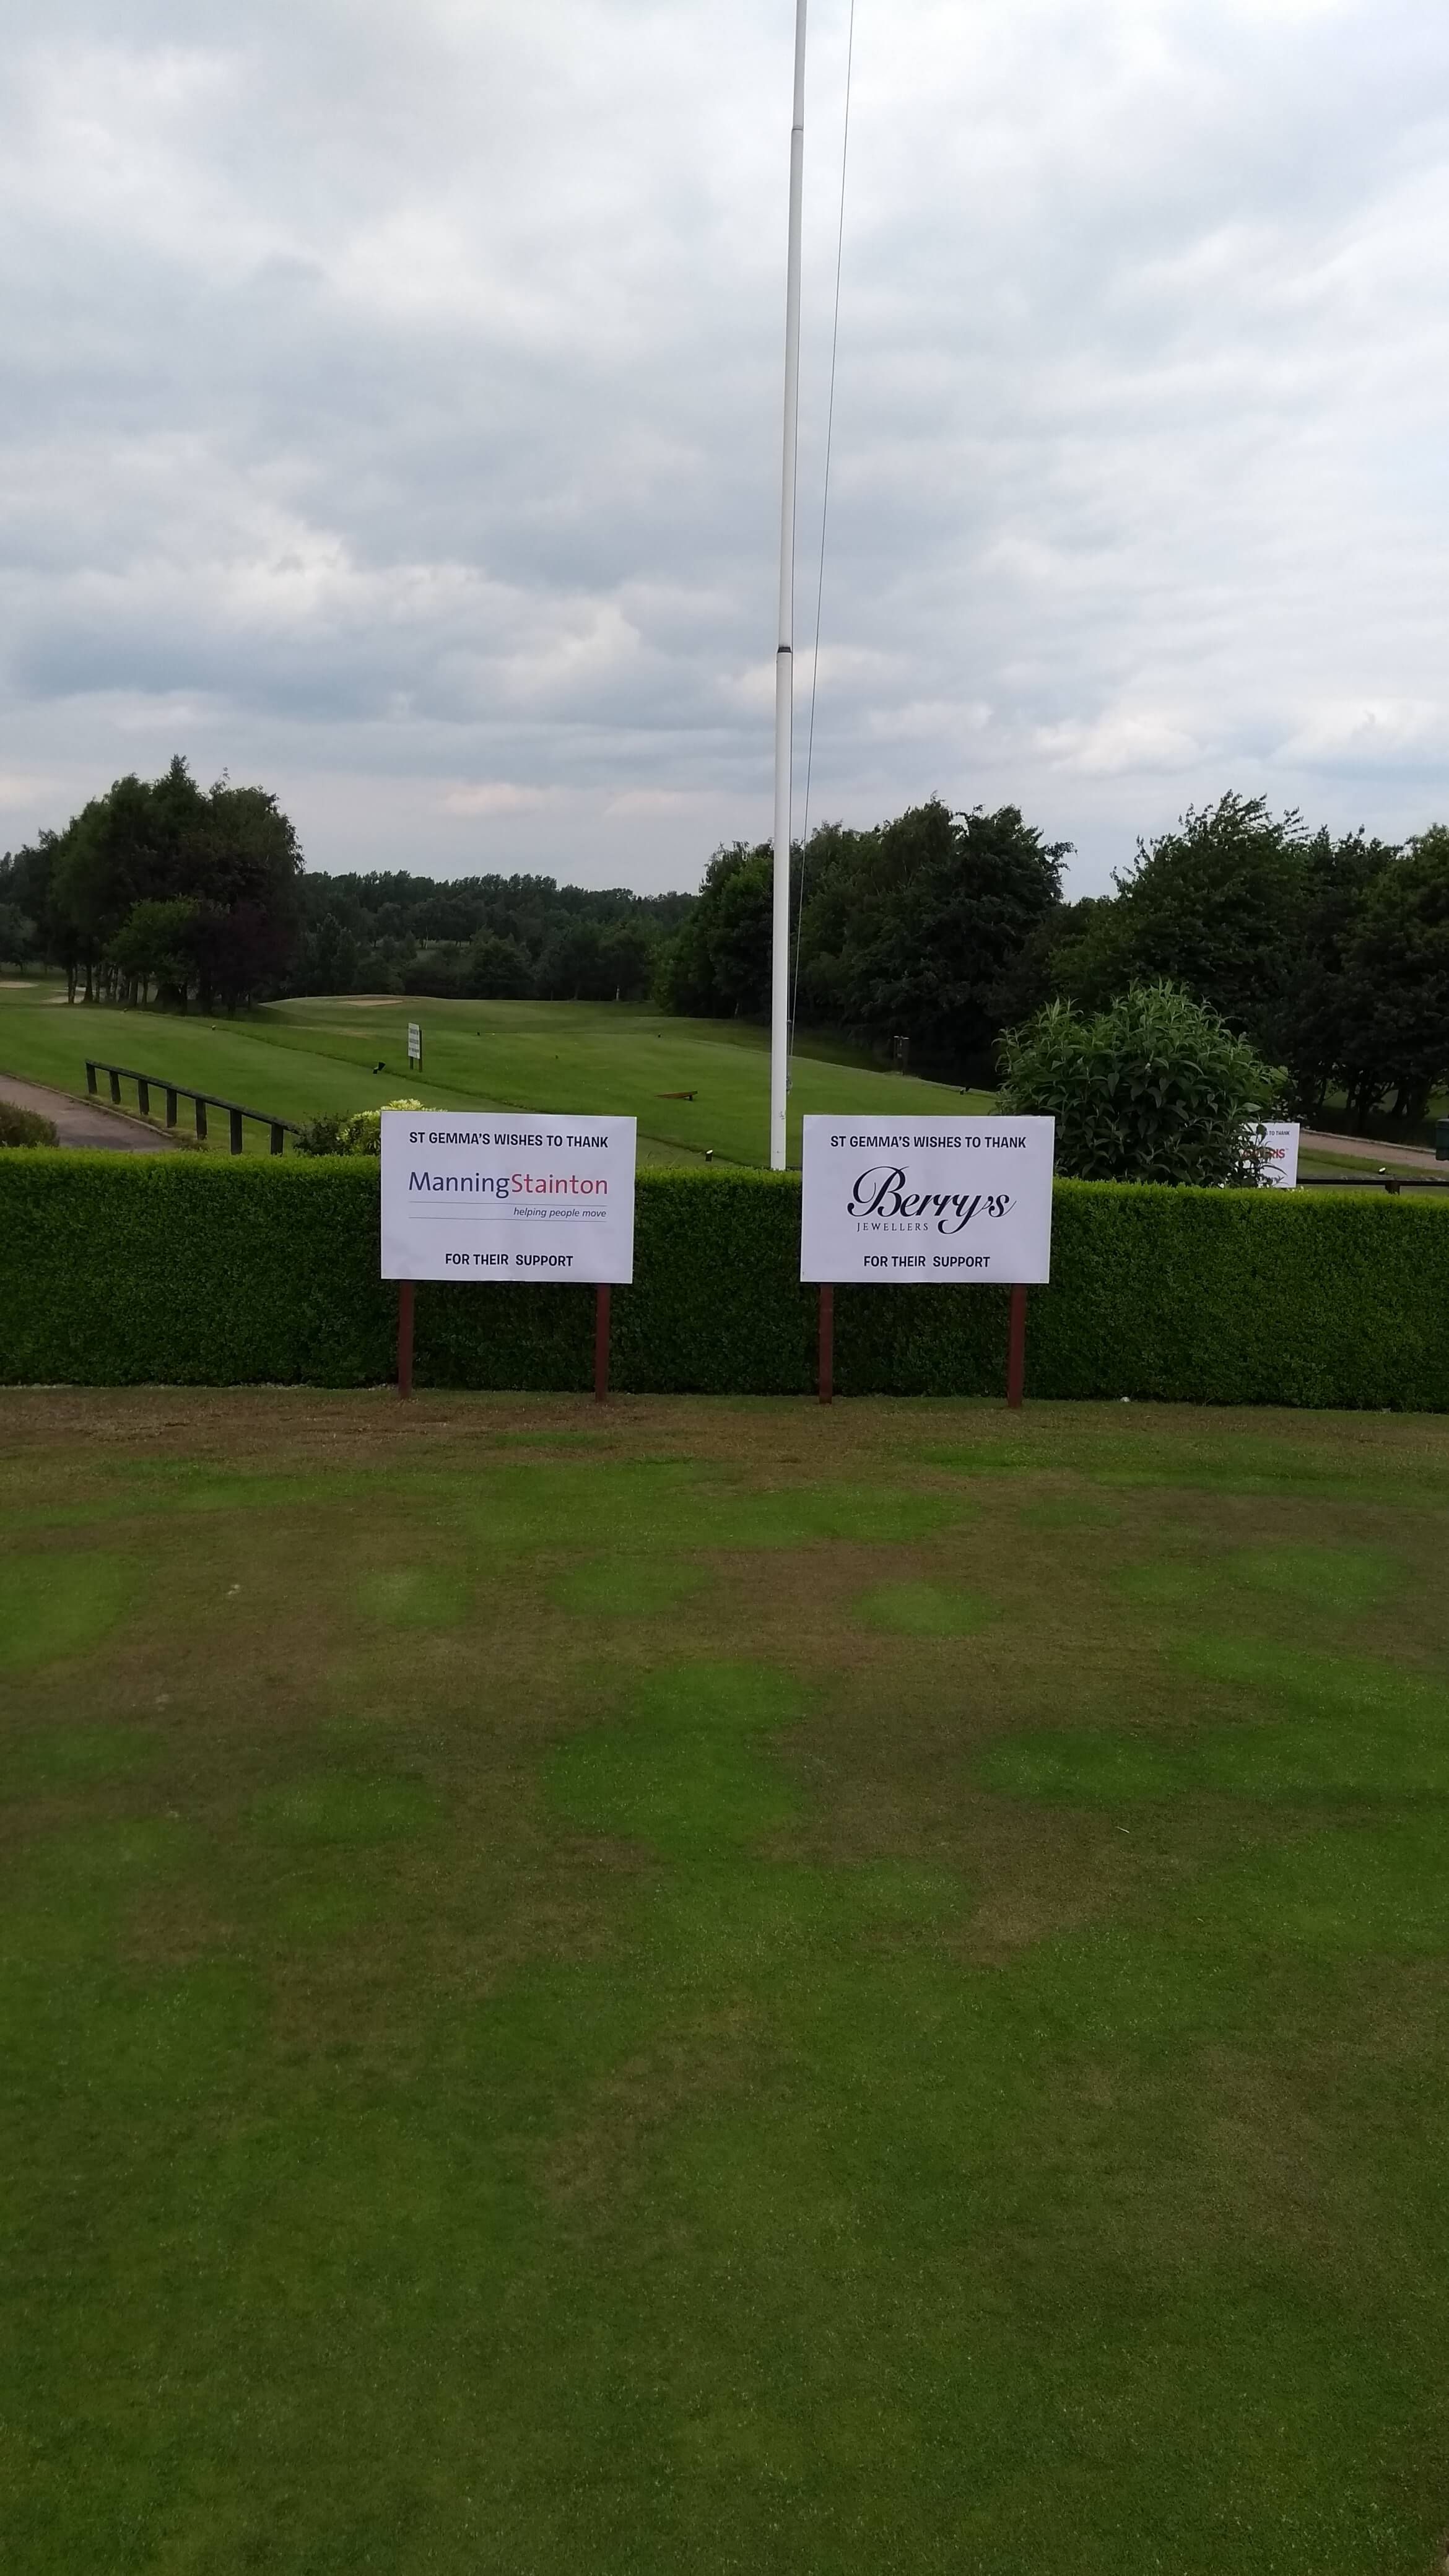 Manning Stainton and Berry's Hole Sponsor